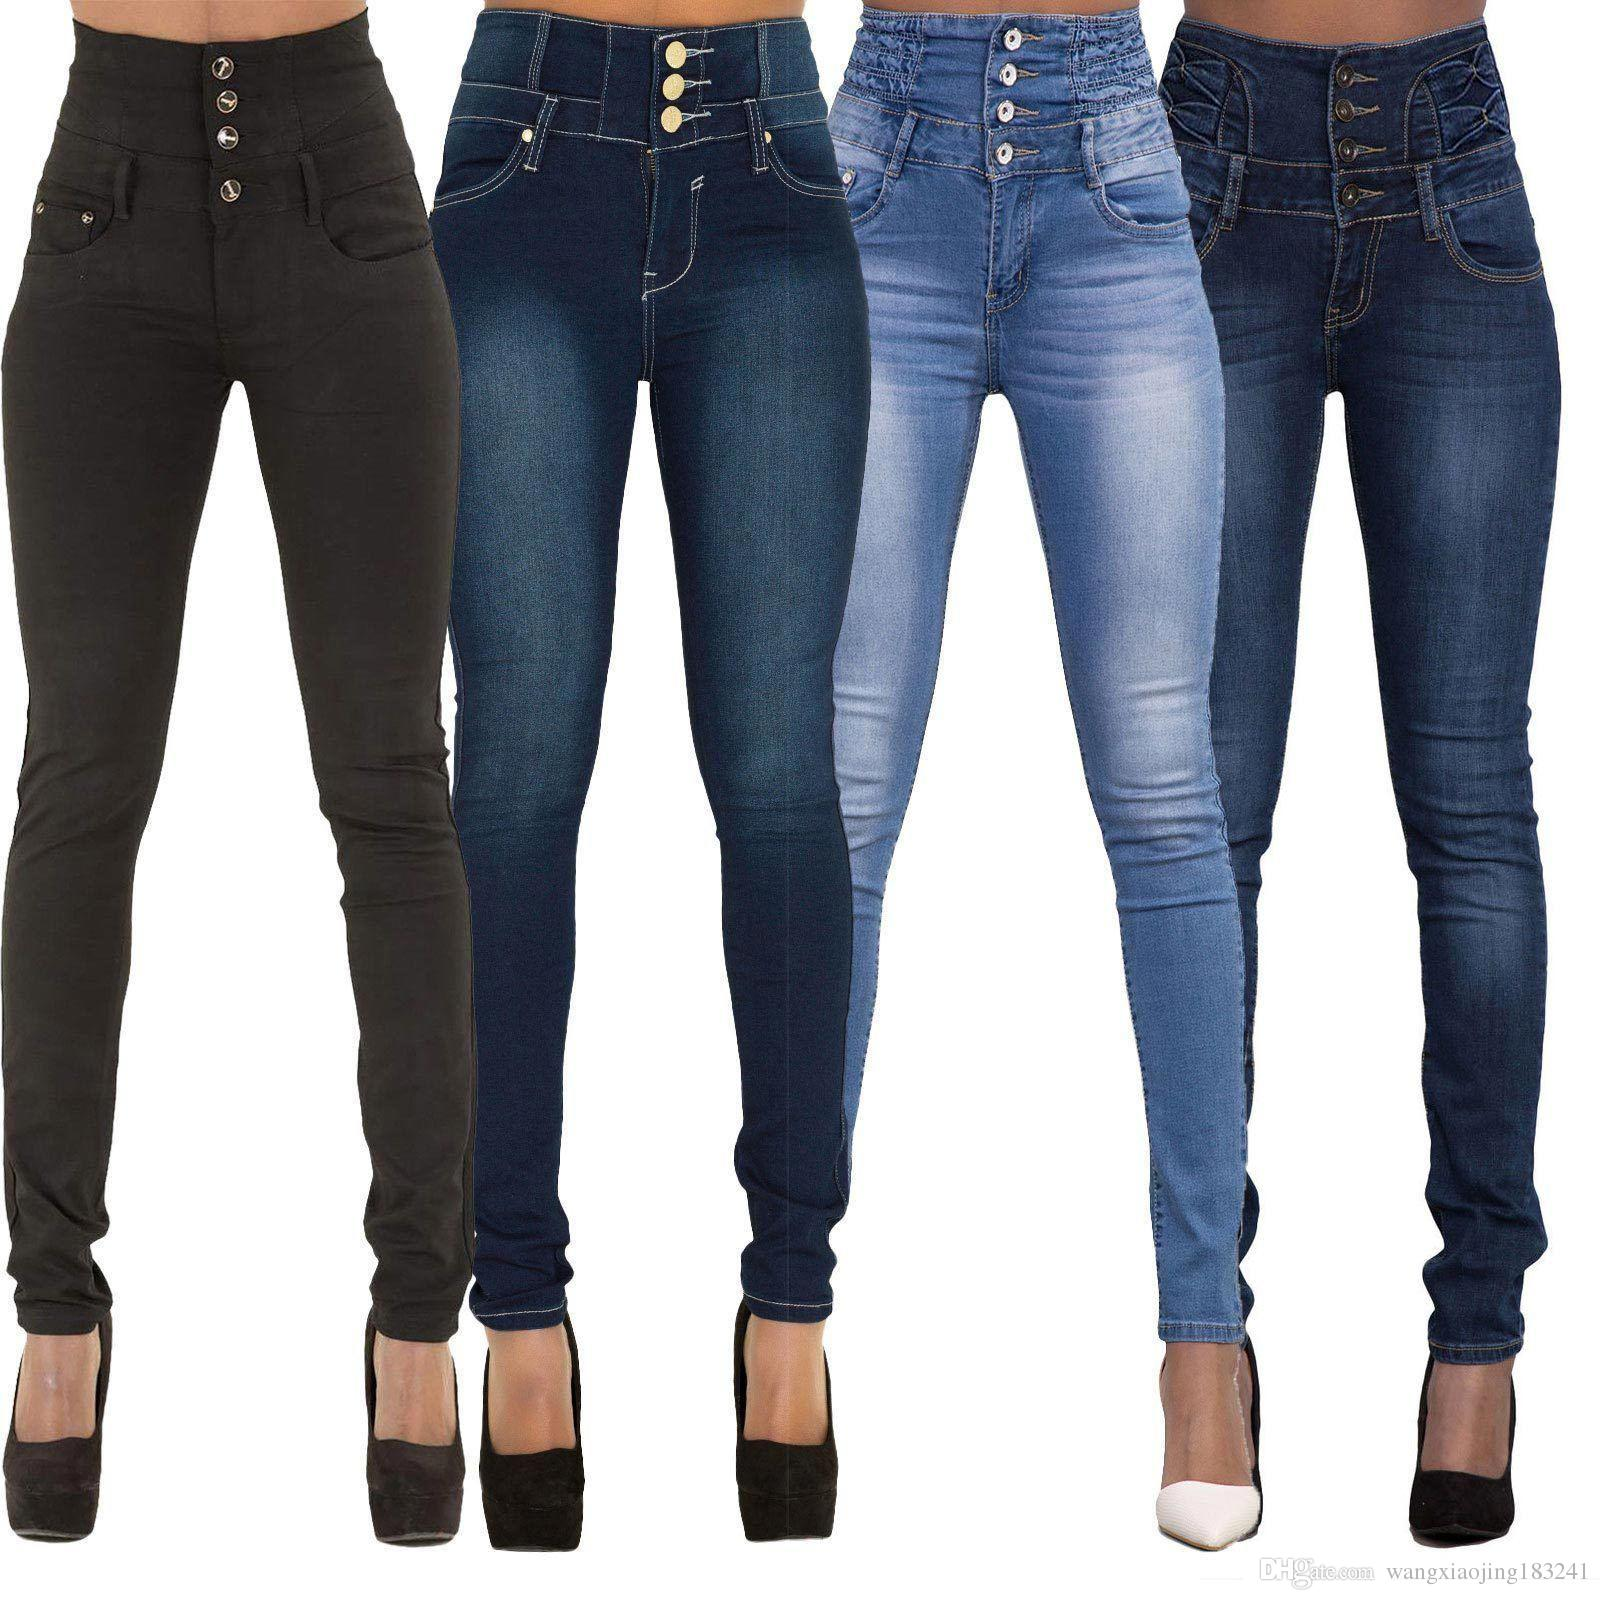 Black Blue High Stretch Skinny High Waisted Jeans Womens Fashion ...